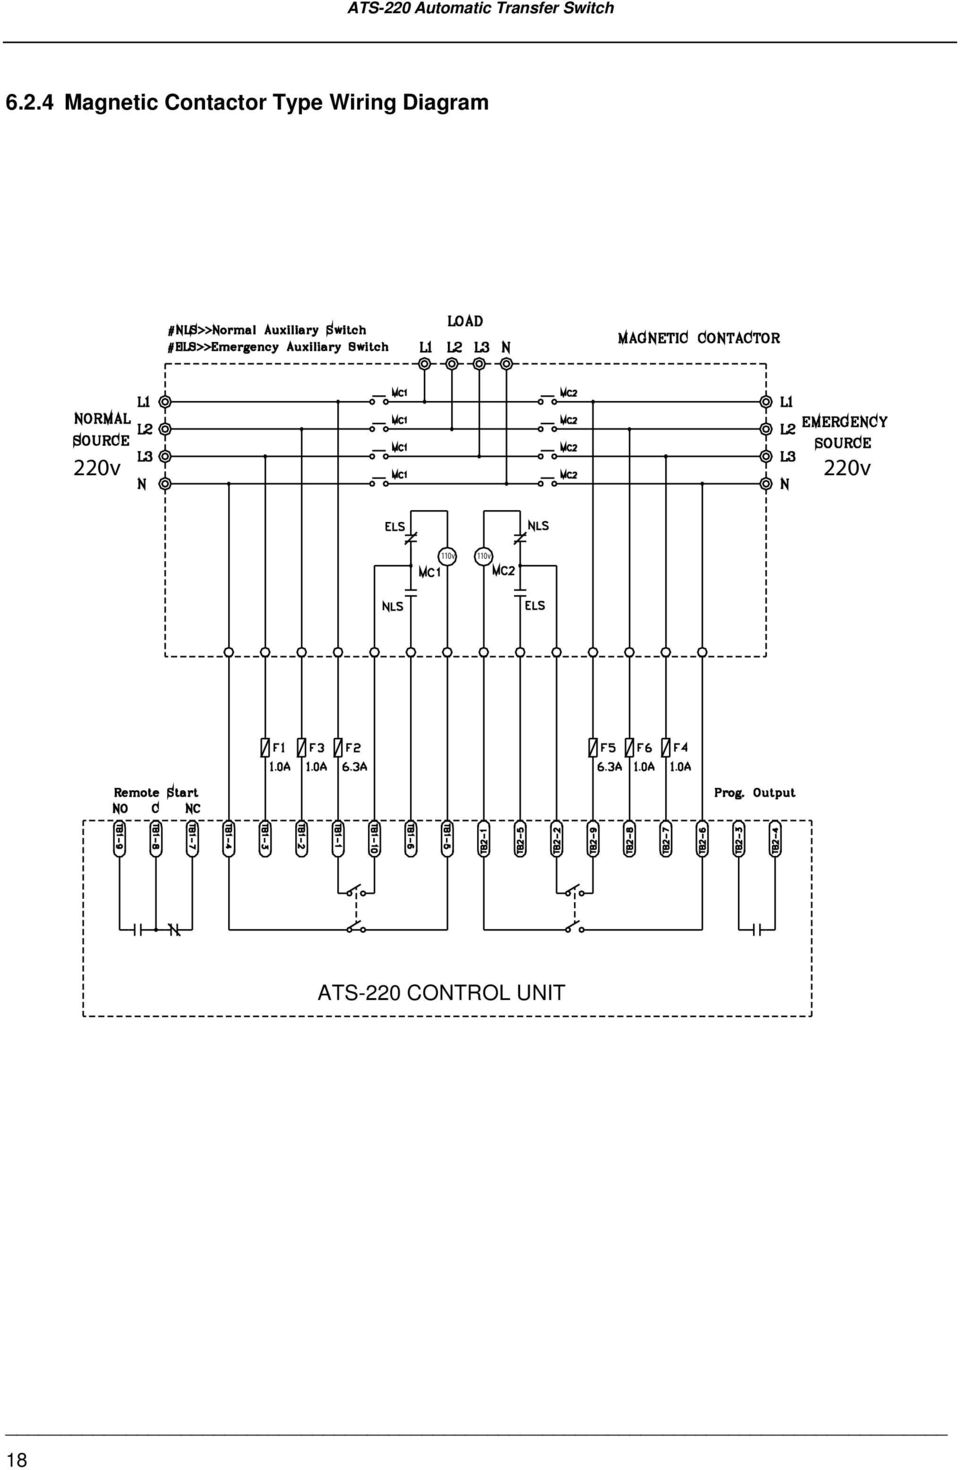 ats wiring diagram wiring diagram rh a4 ansolsolder co